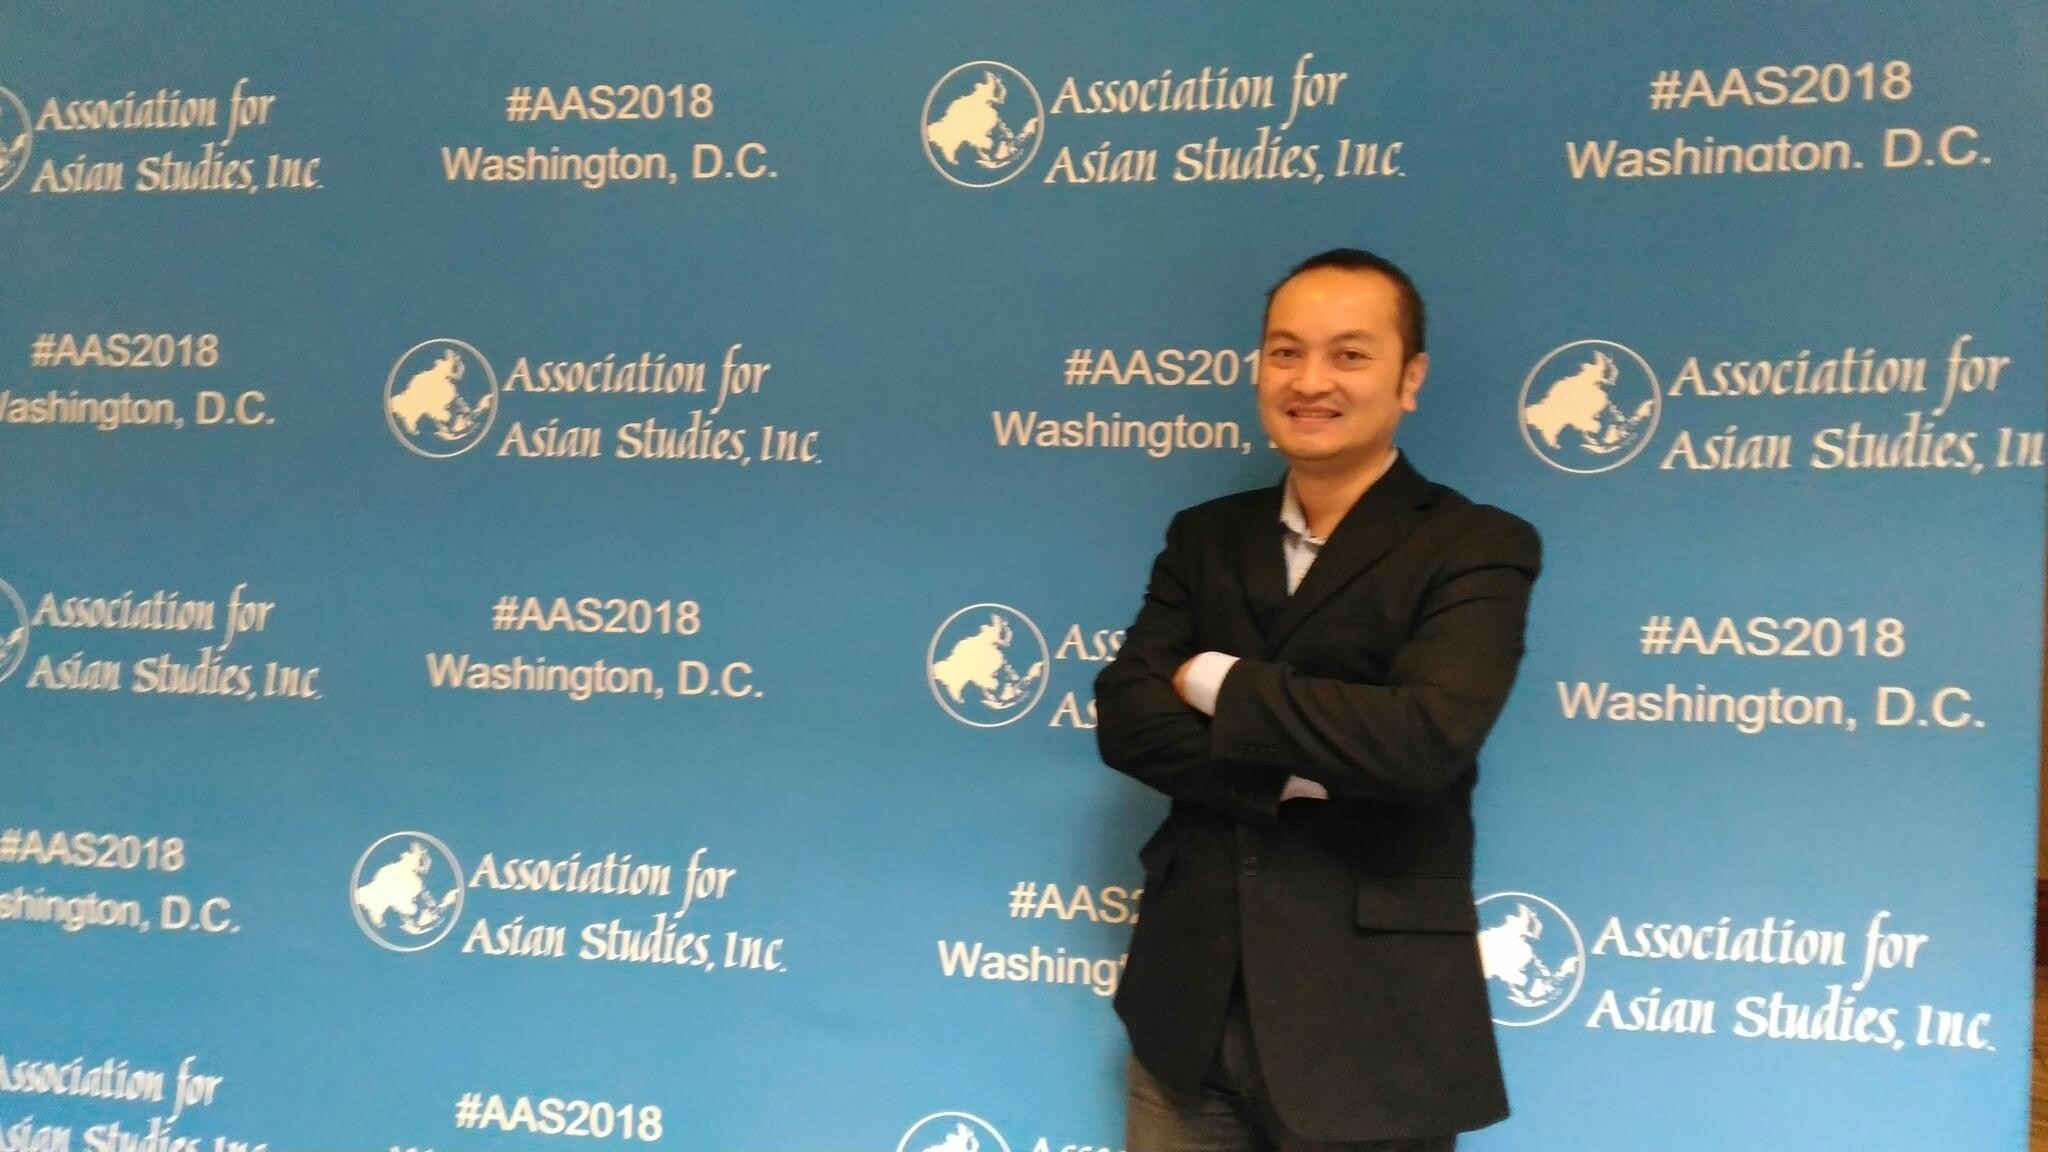 Association of Asian Studies Annual Conference 2018 @Washington DC